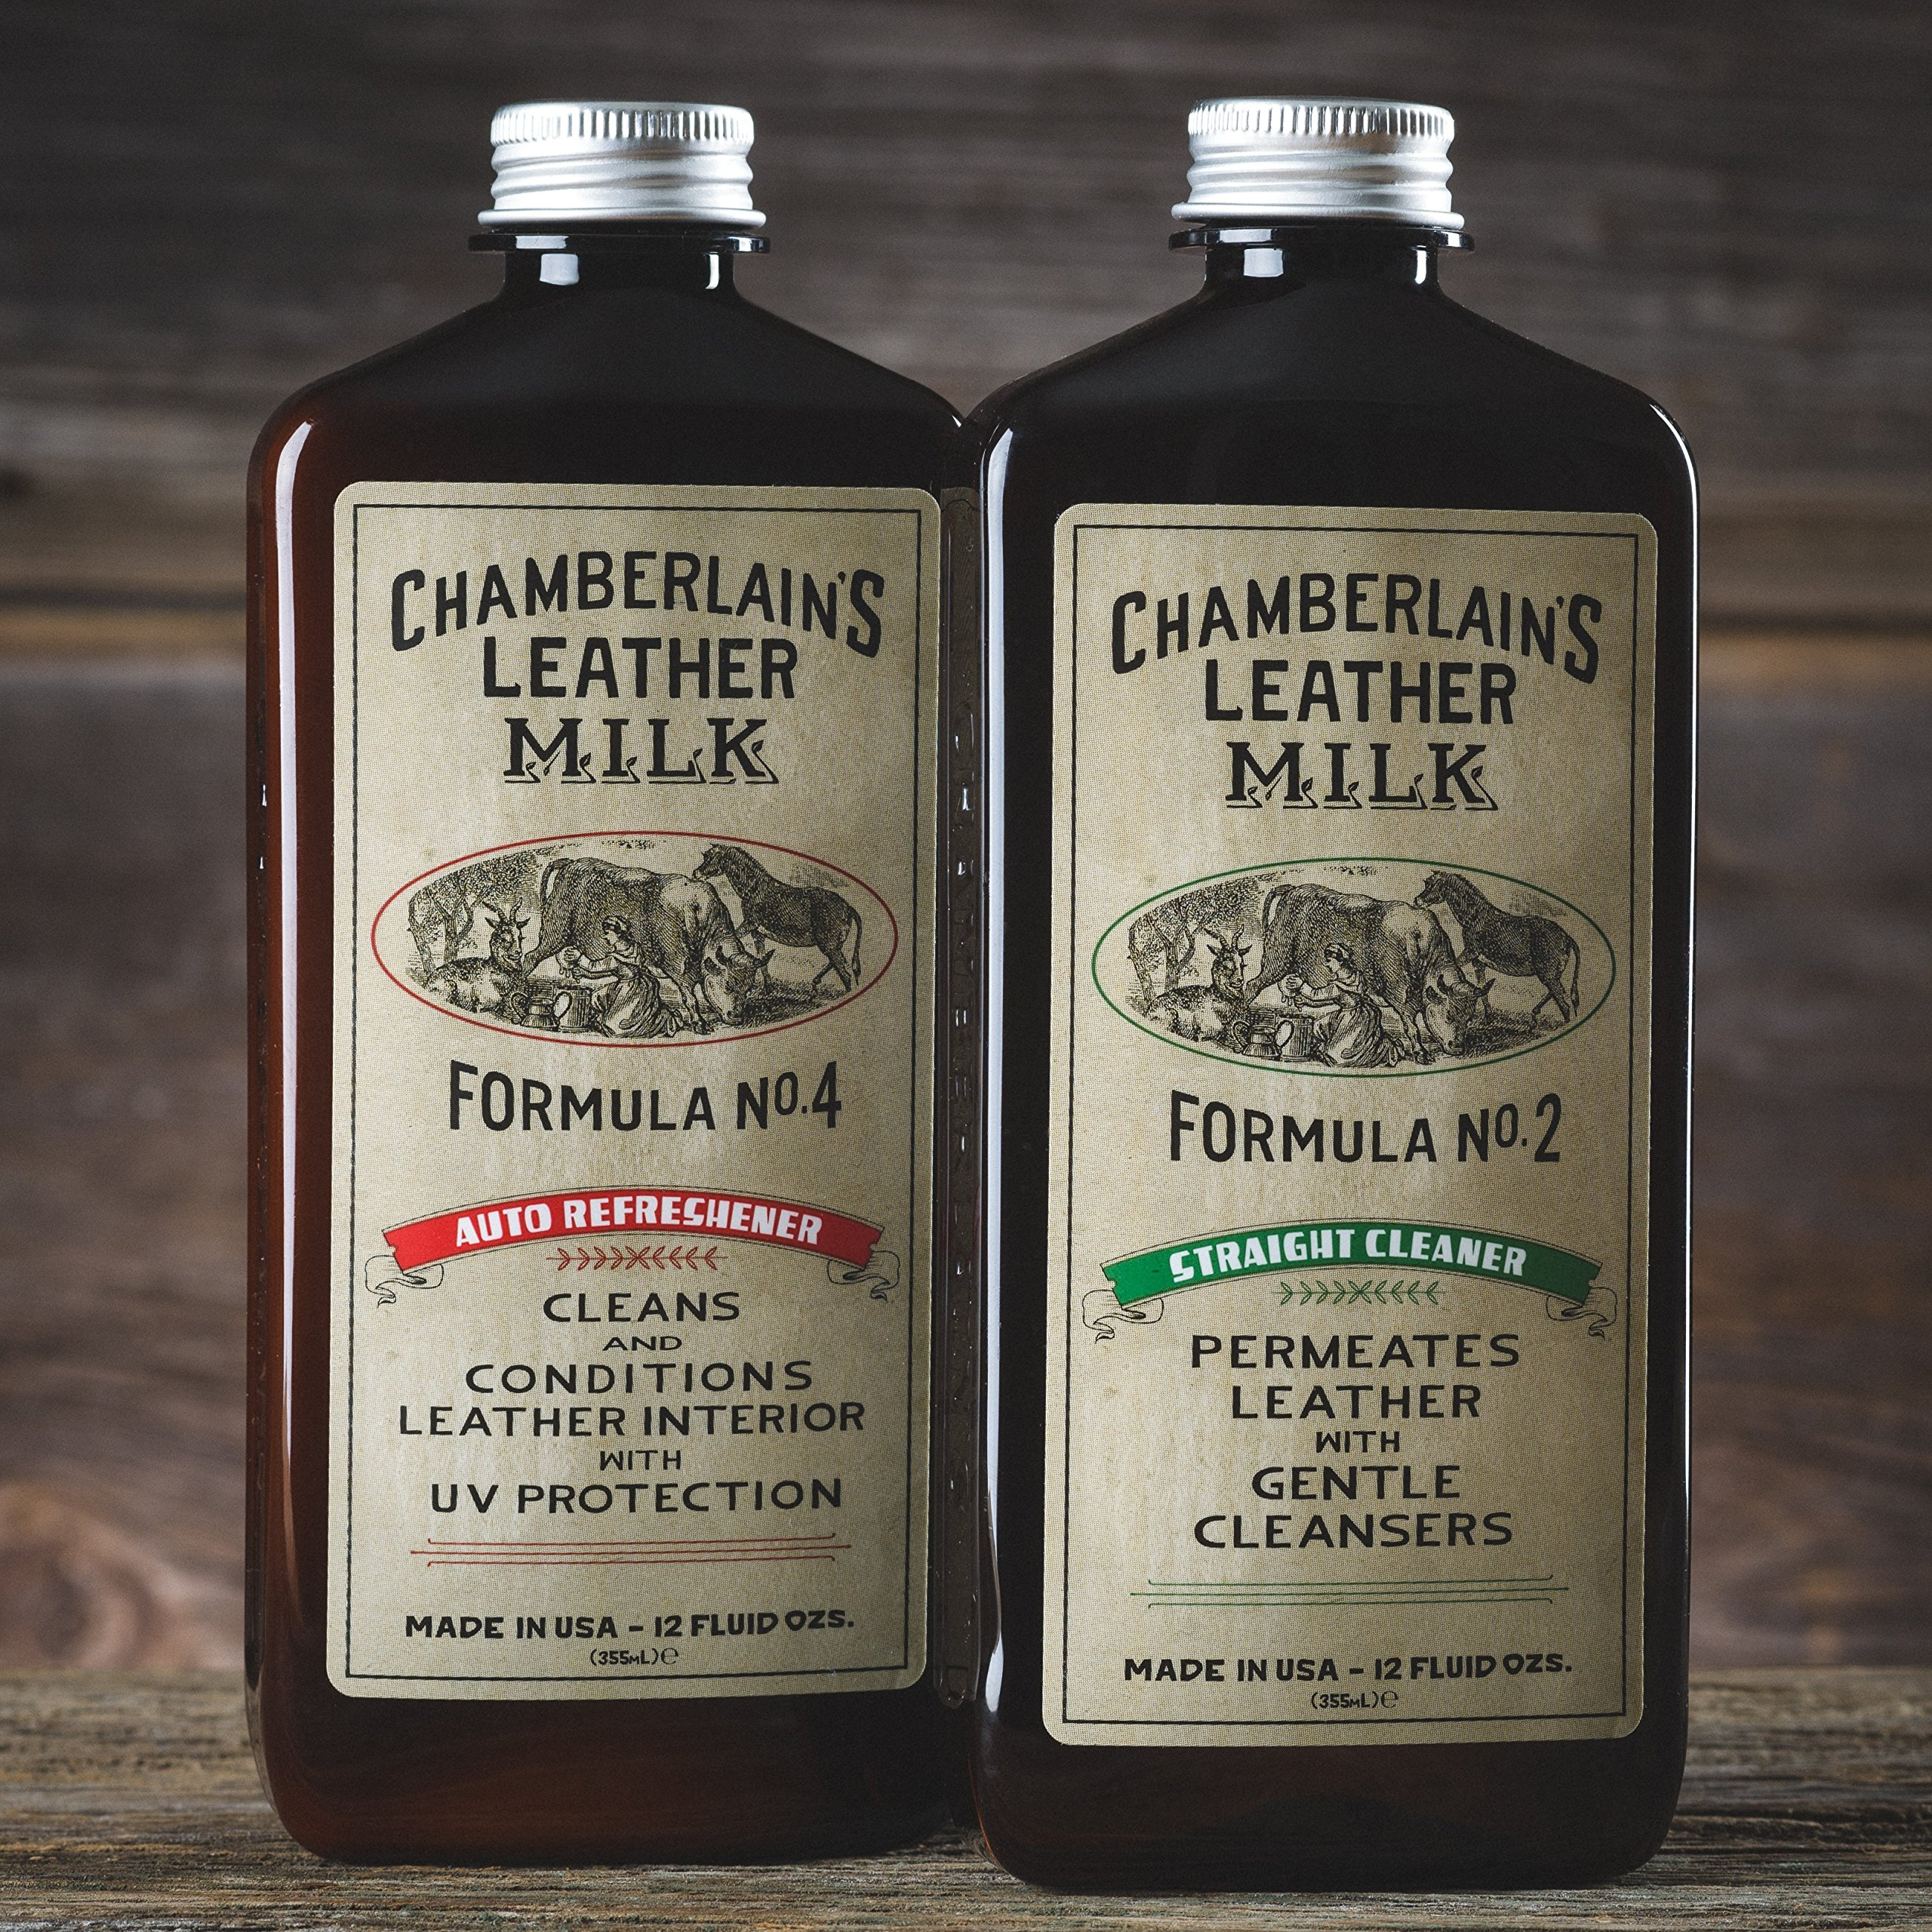 Leather Milk Auto Leather Cleaner & Conditioner Kit (2 Formula Car Detailing Set) - Straight Cleaner No. 2 + Auto Refreshener No. 4 - All Natural, Non-Toxic. Made in USA. Includes 2 Detailing Pads! by Chamberlain's Leather Milk (Image #2)